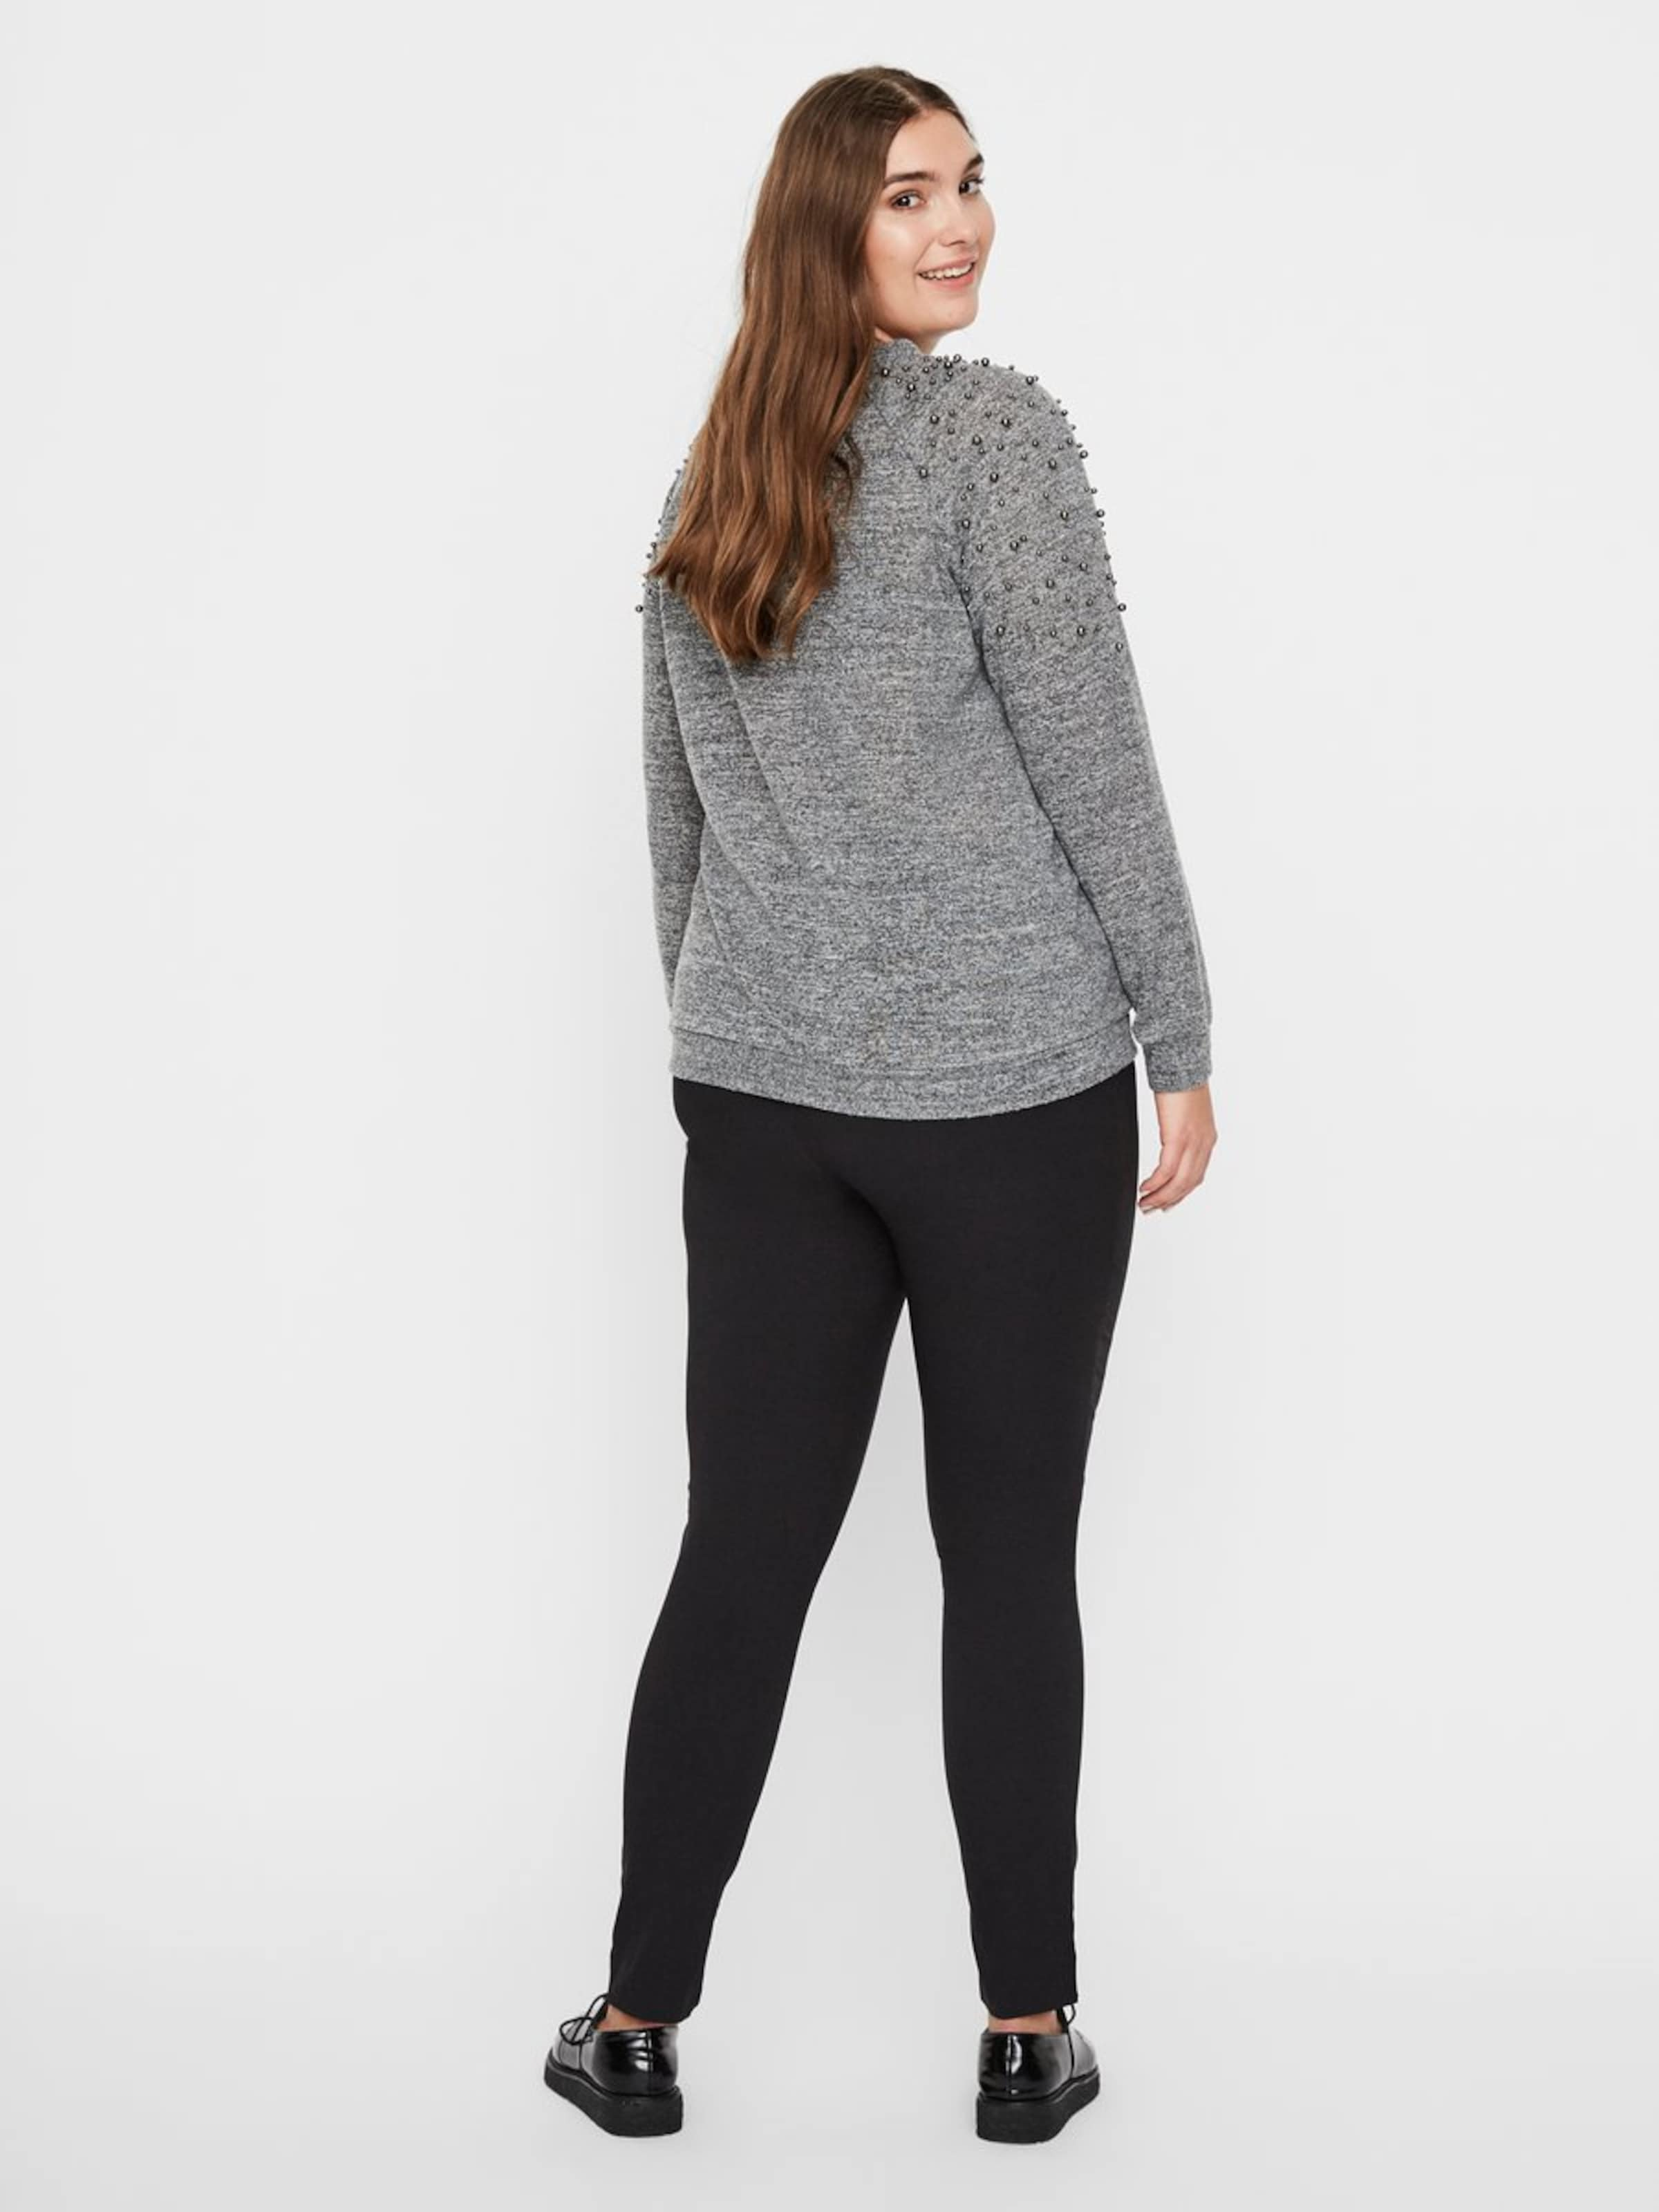 In Junarose Grau Junarose Junarose Grau Pullover Pullover In Pullover In 7gf6by